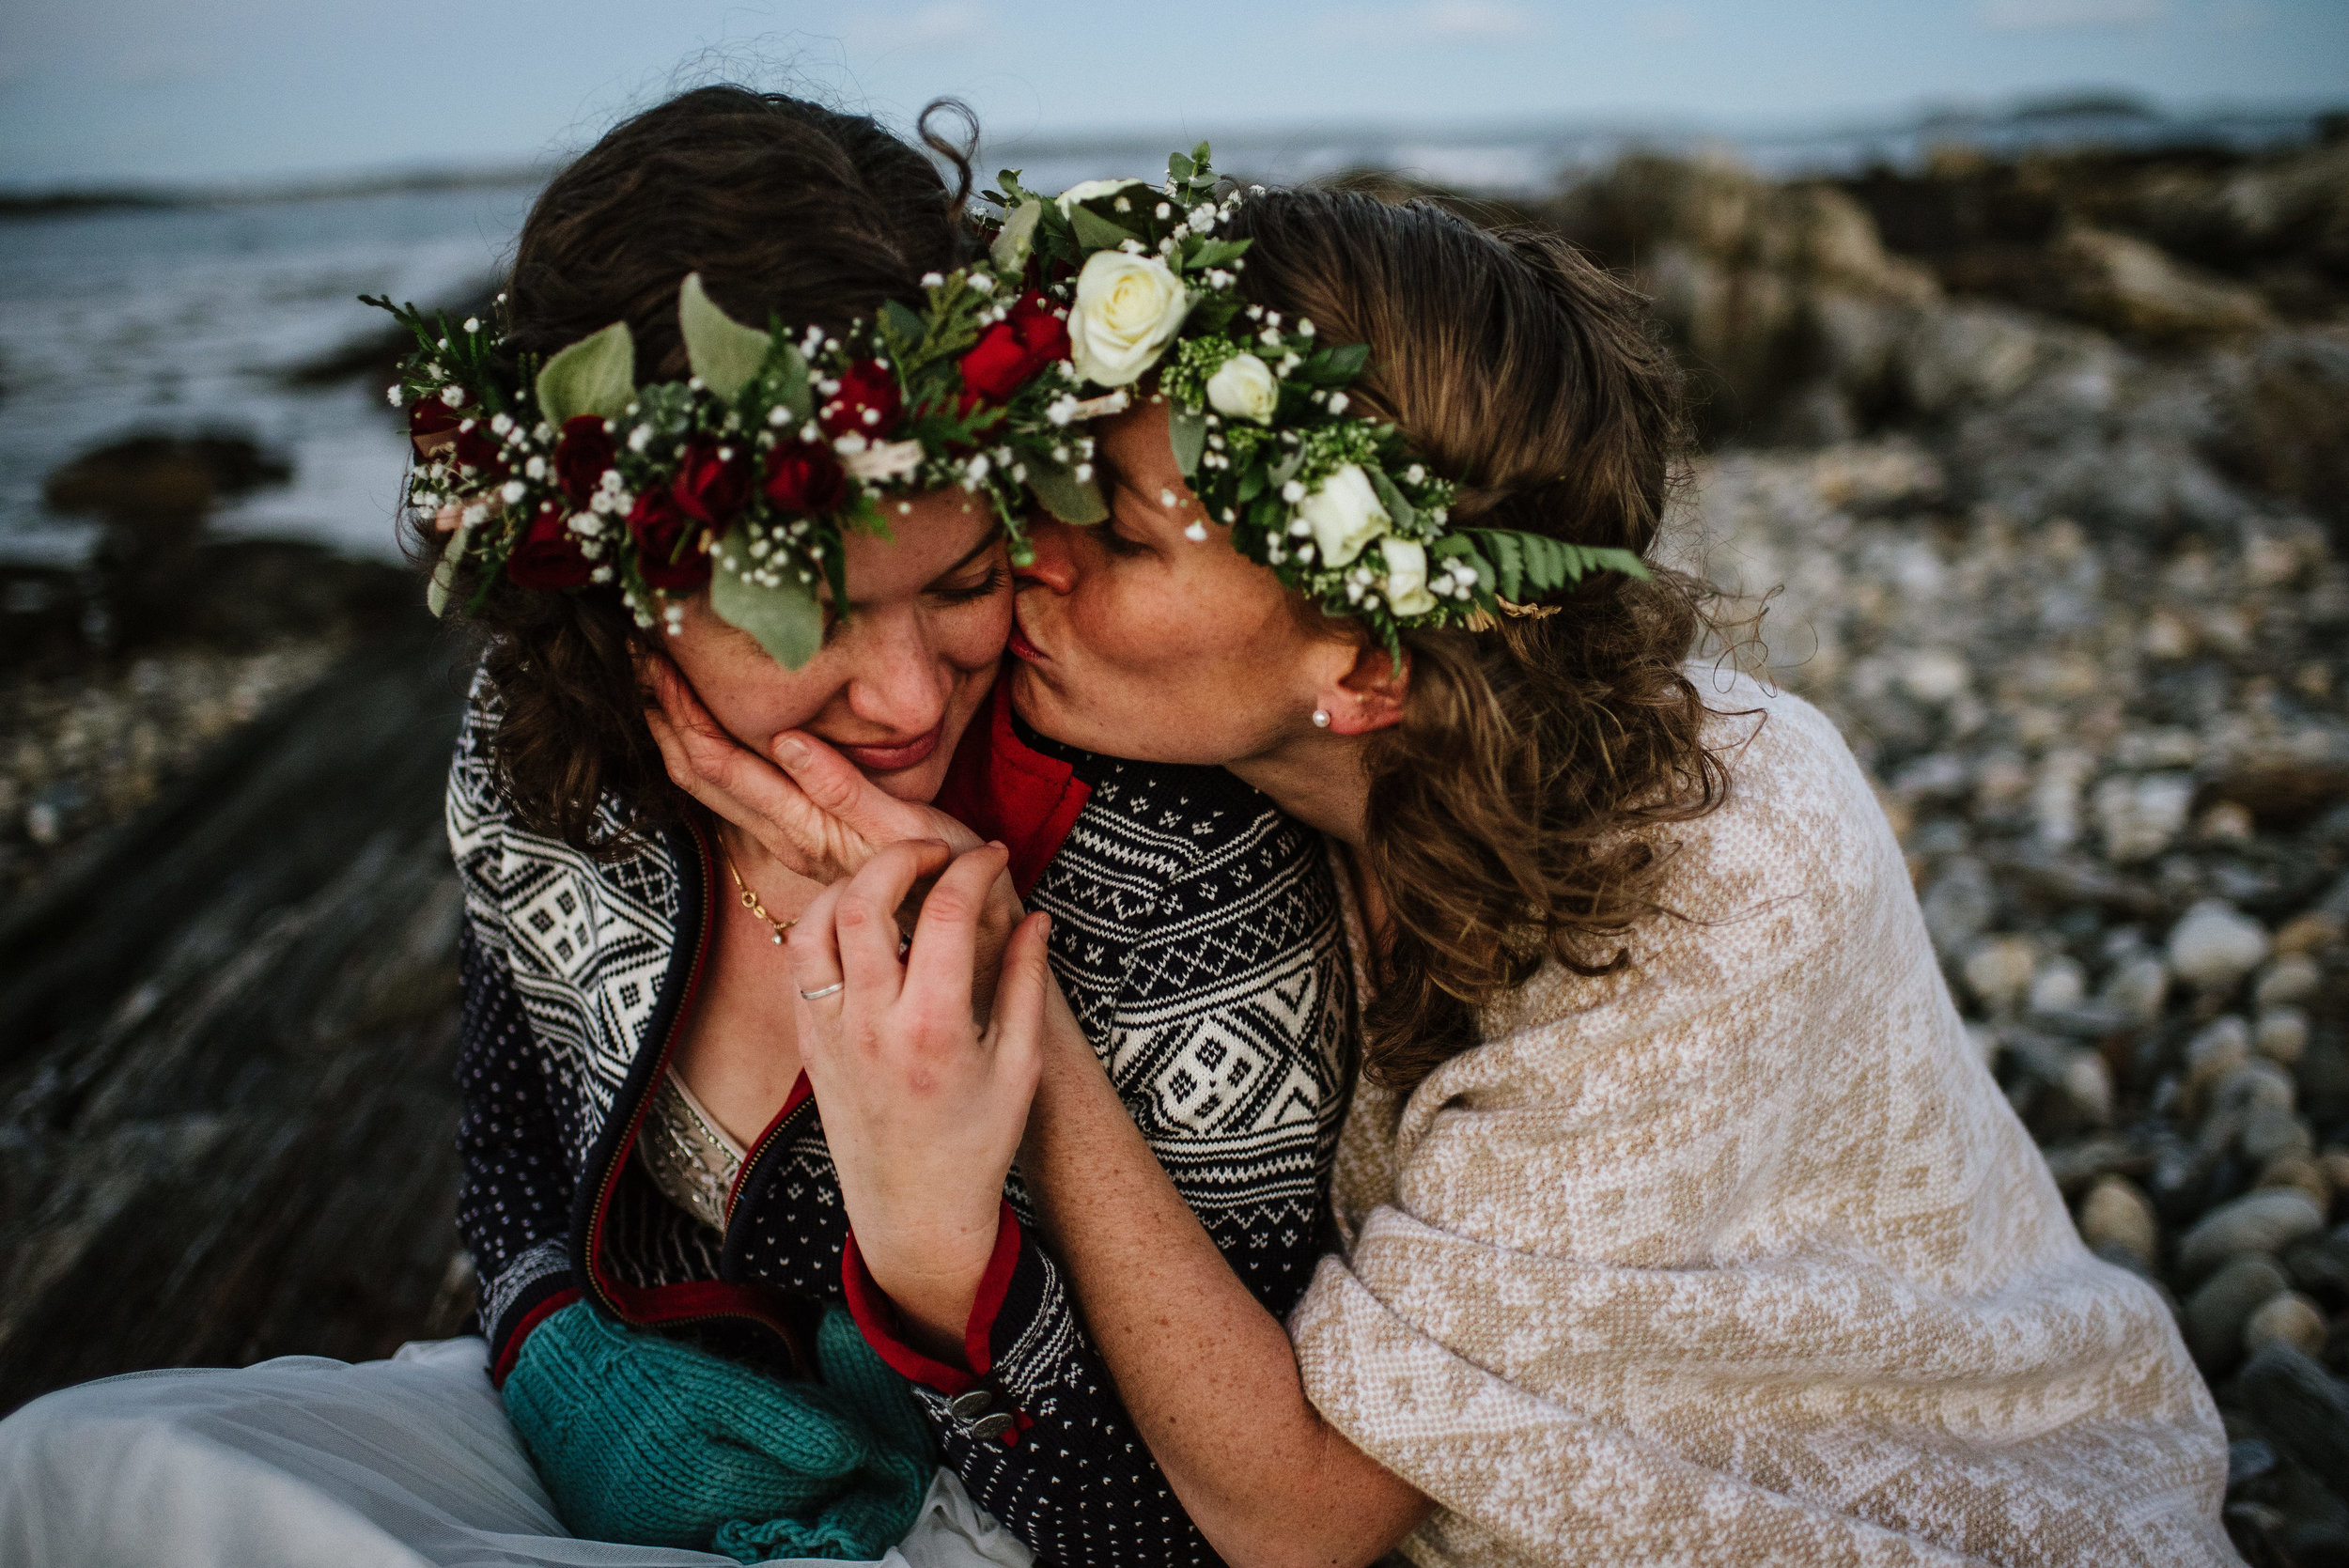 Kaleigh and I got married in an intimate ceremony on Prouts Neck in Maine. (Photo: Bethany and Dan Cox)